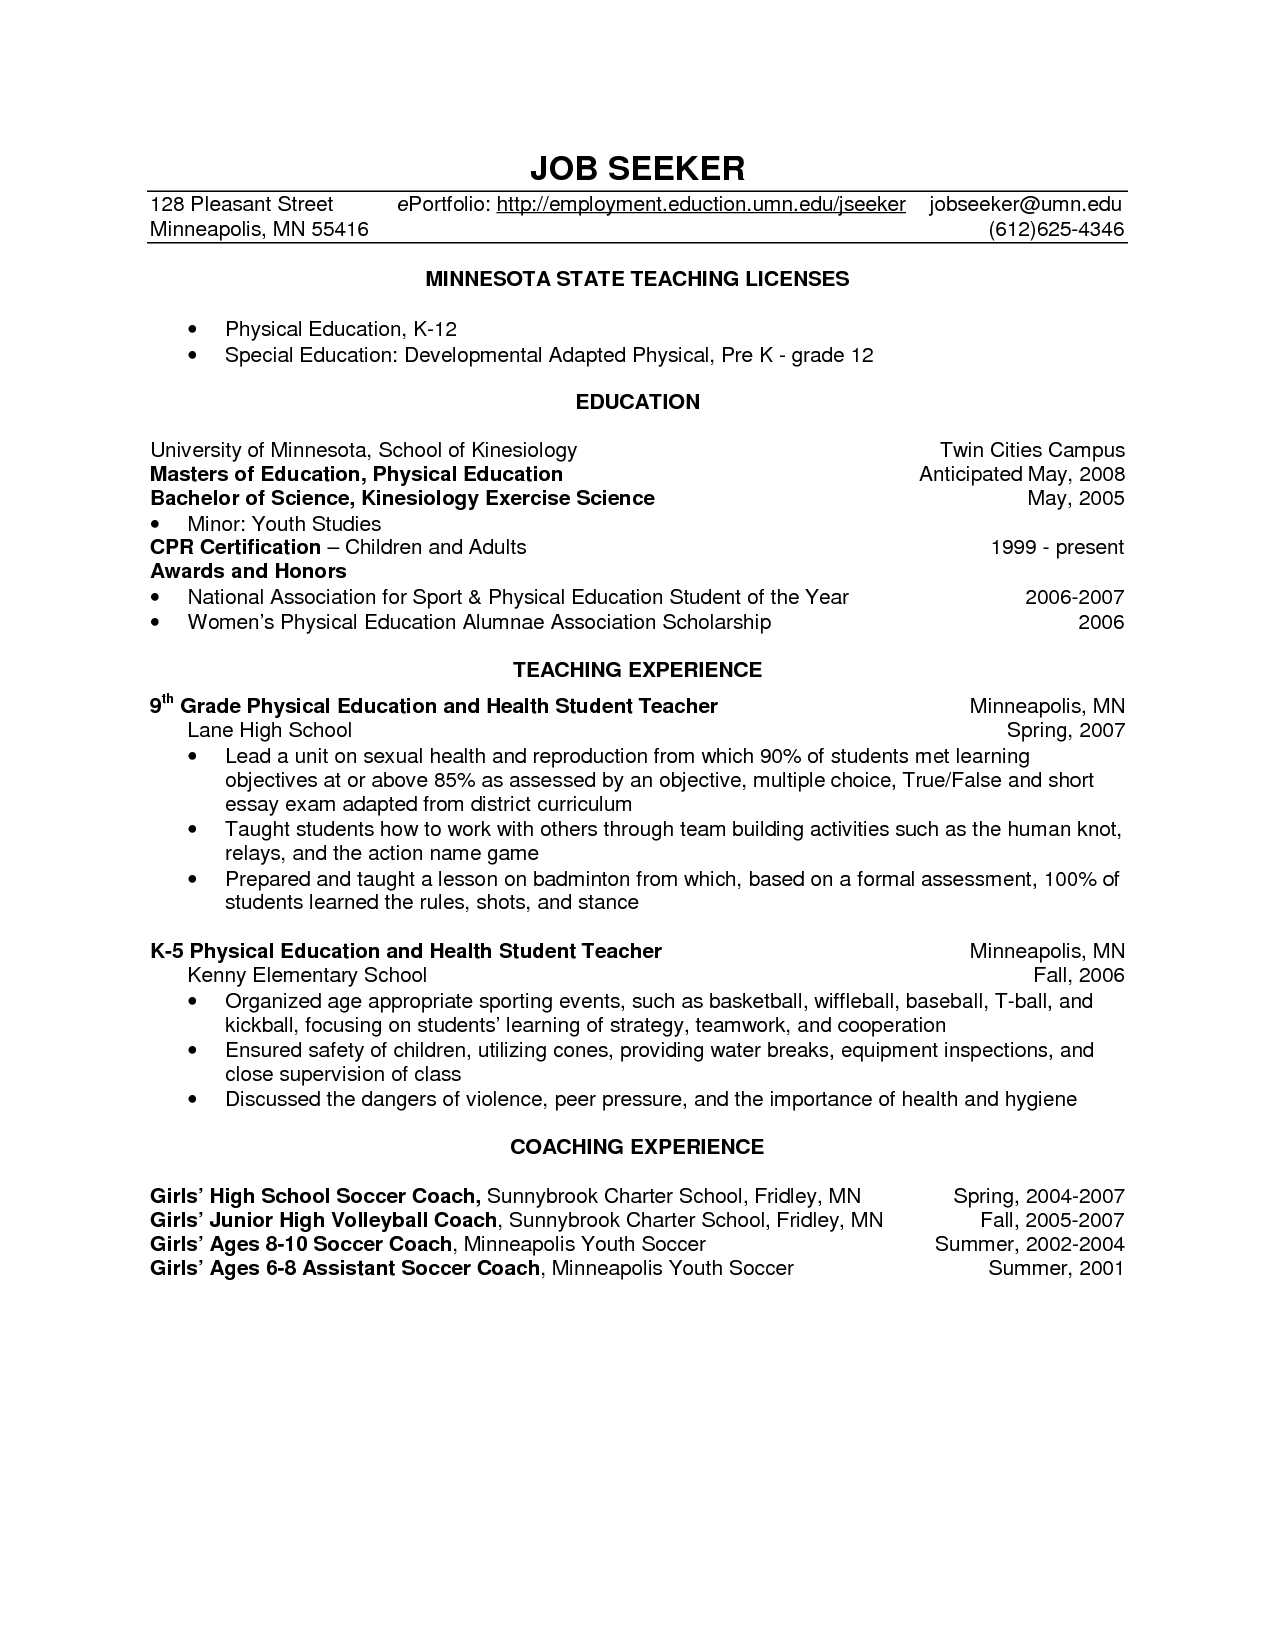 Resume Words For Teachers Restaurant Waitress Pcb Layout Teaching  Objectives Examples Resumes Lawteched Education Templates Mac Tea  Educational Template ...